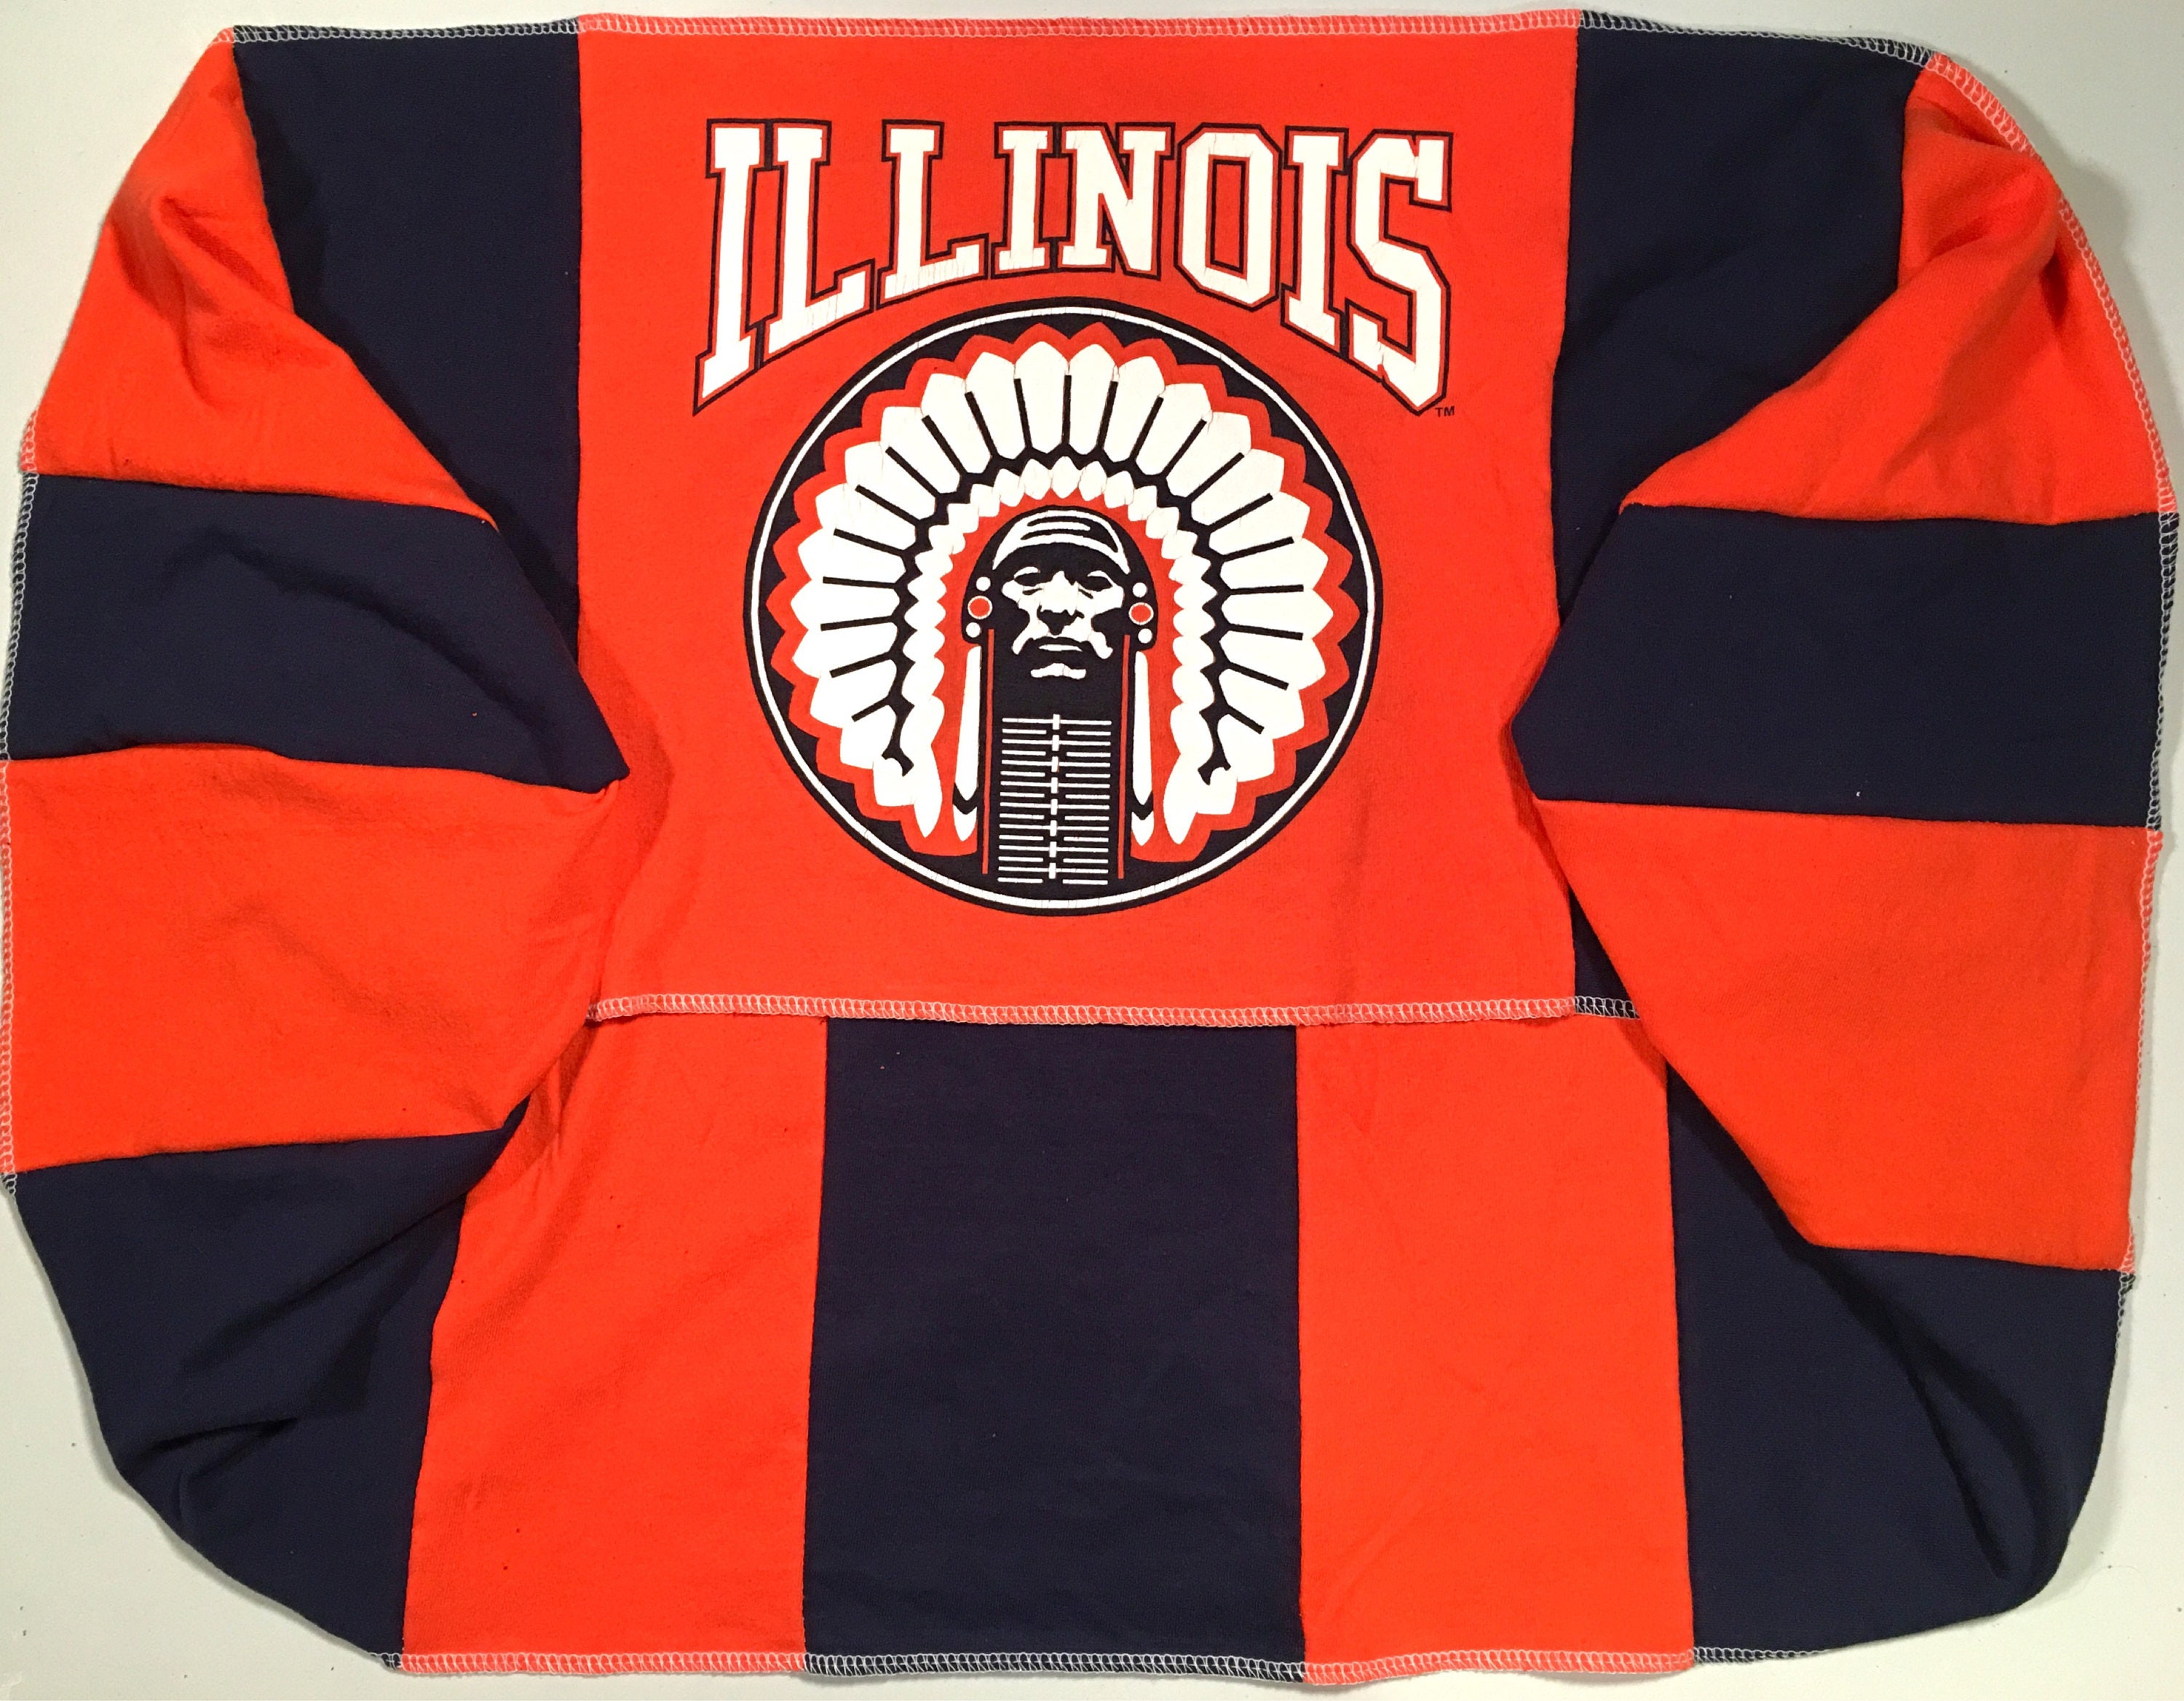 Infinity Scarf U Of I University of ILLINOIS Fighting Illini Team Spirit Upcycled Woman's T-Shirt New Handmade Scarves